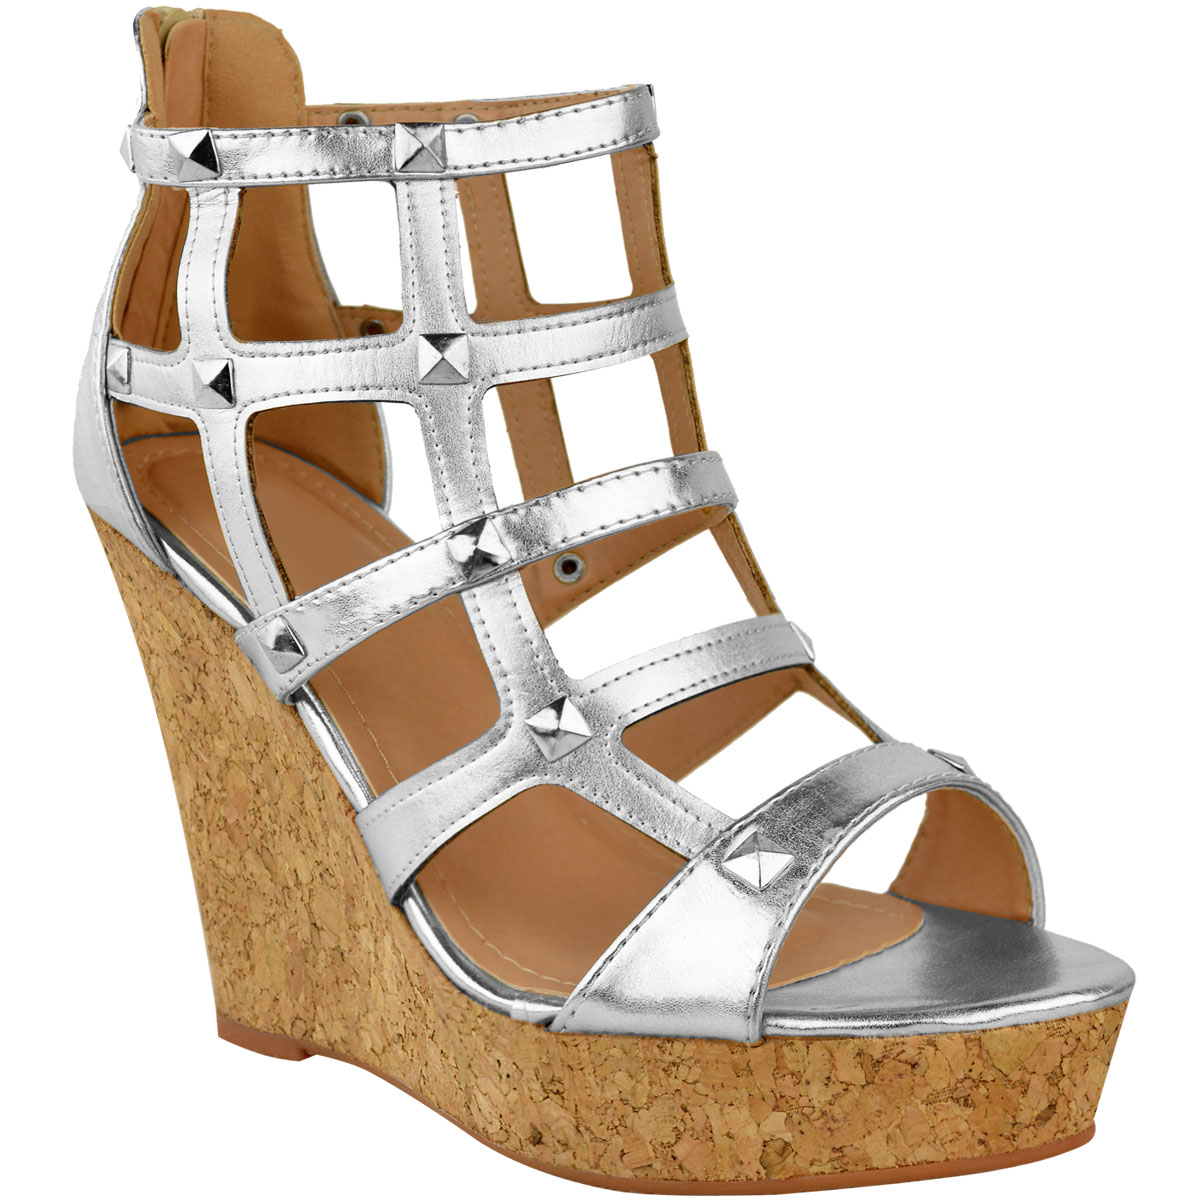 65812461cfc Womens Ladies Wedge Sandals High Heels Caged Summer Party Gladiator ...